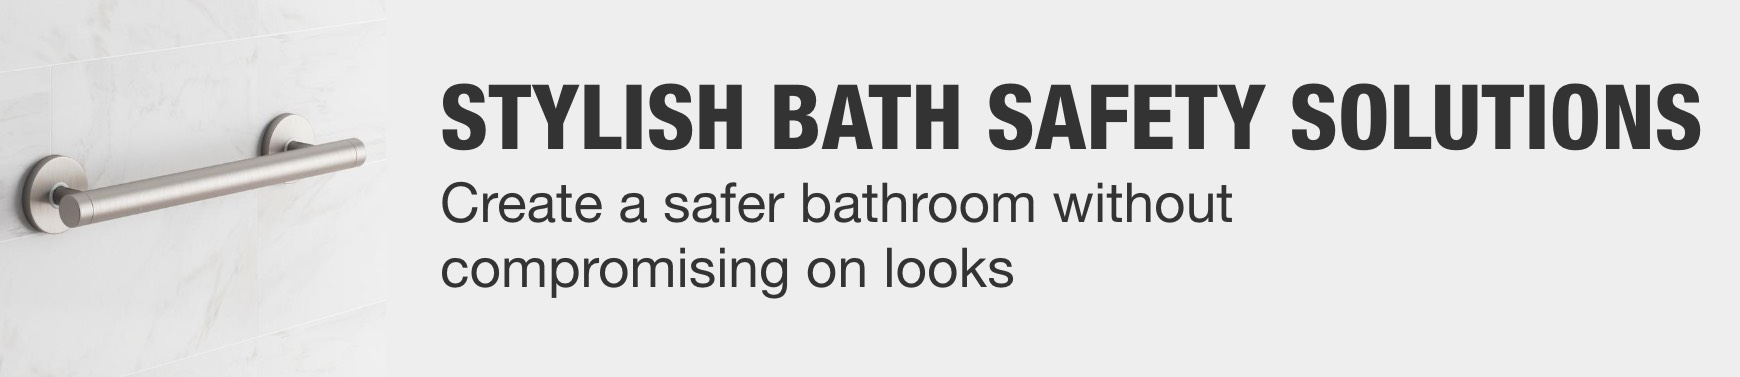 Install Bath Safety Solutions Without Compromising Style